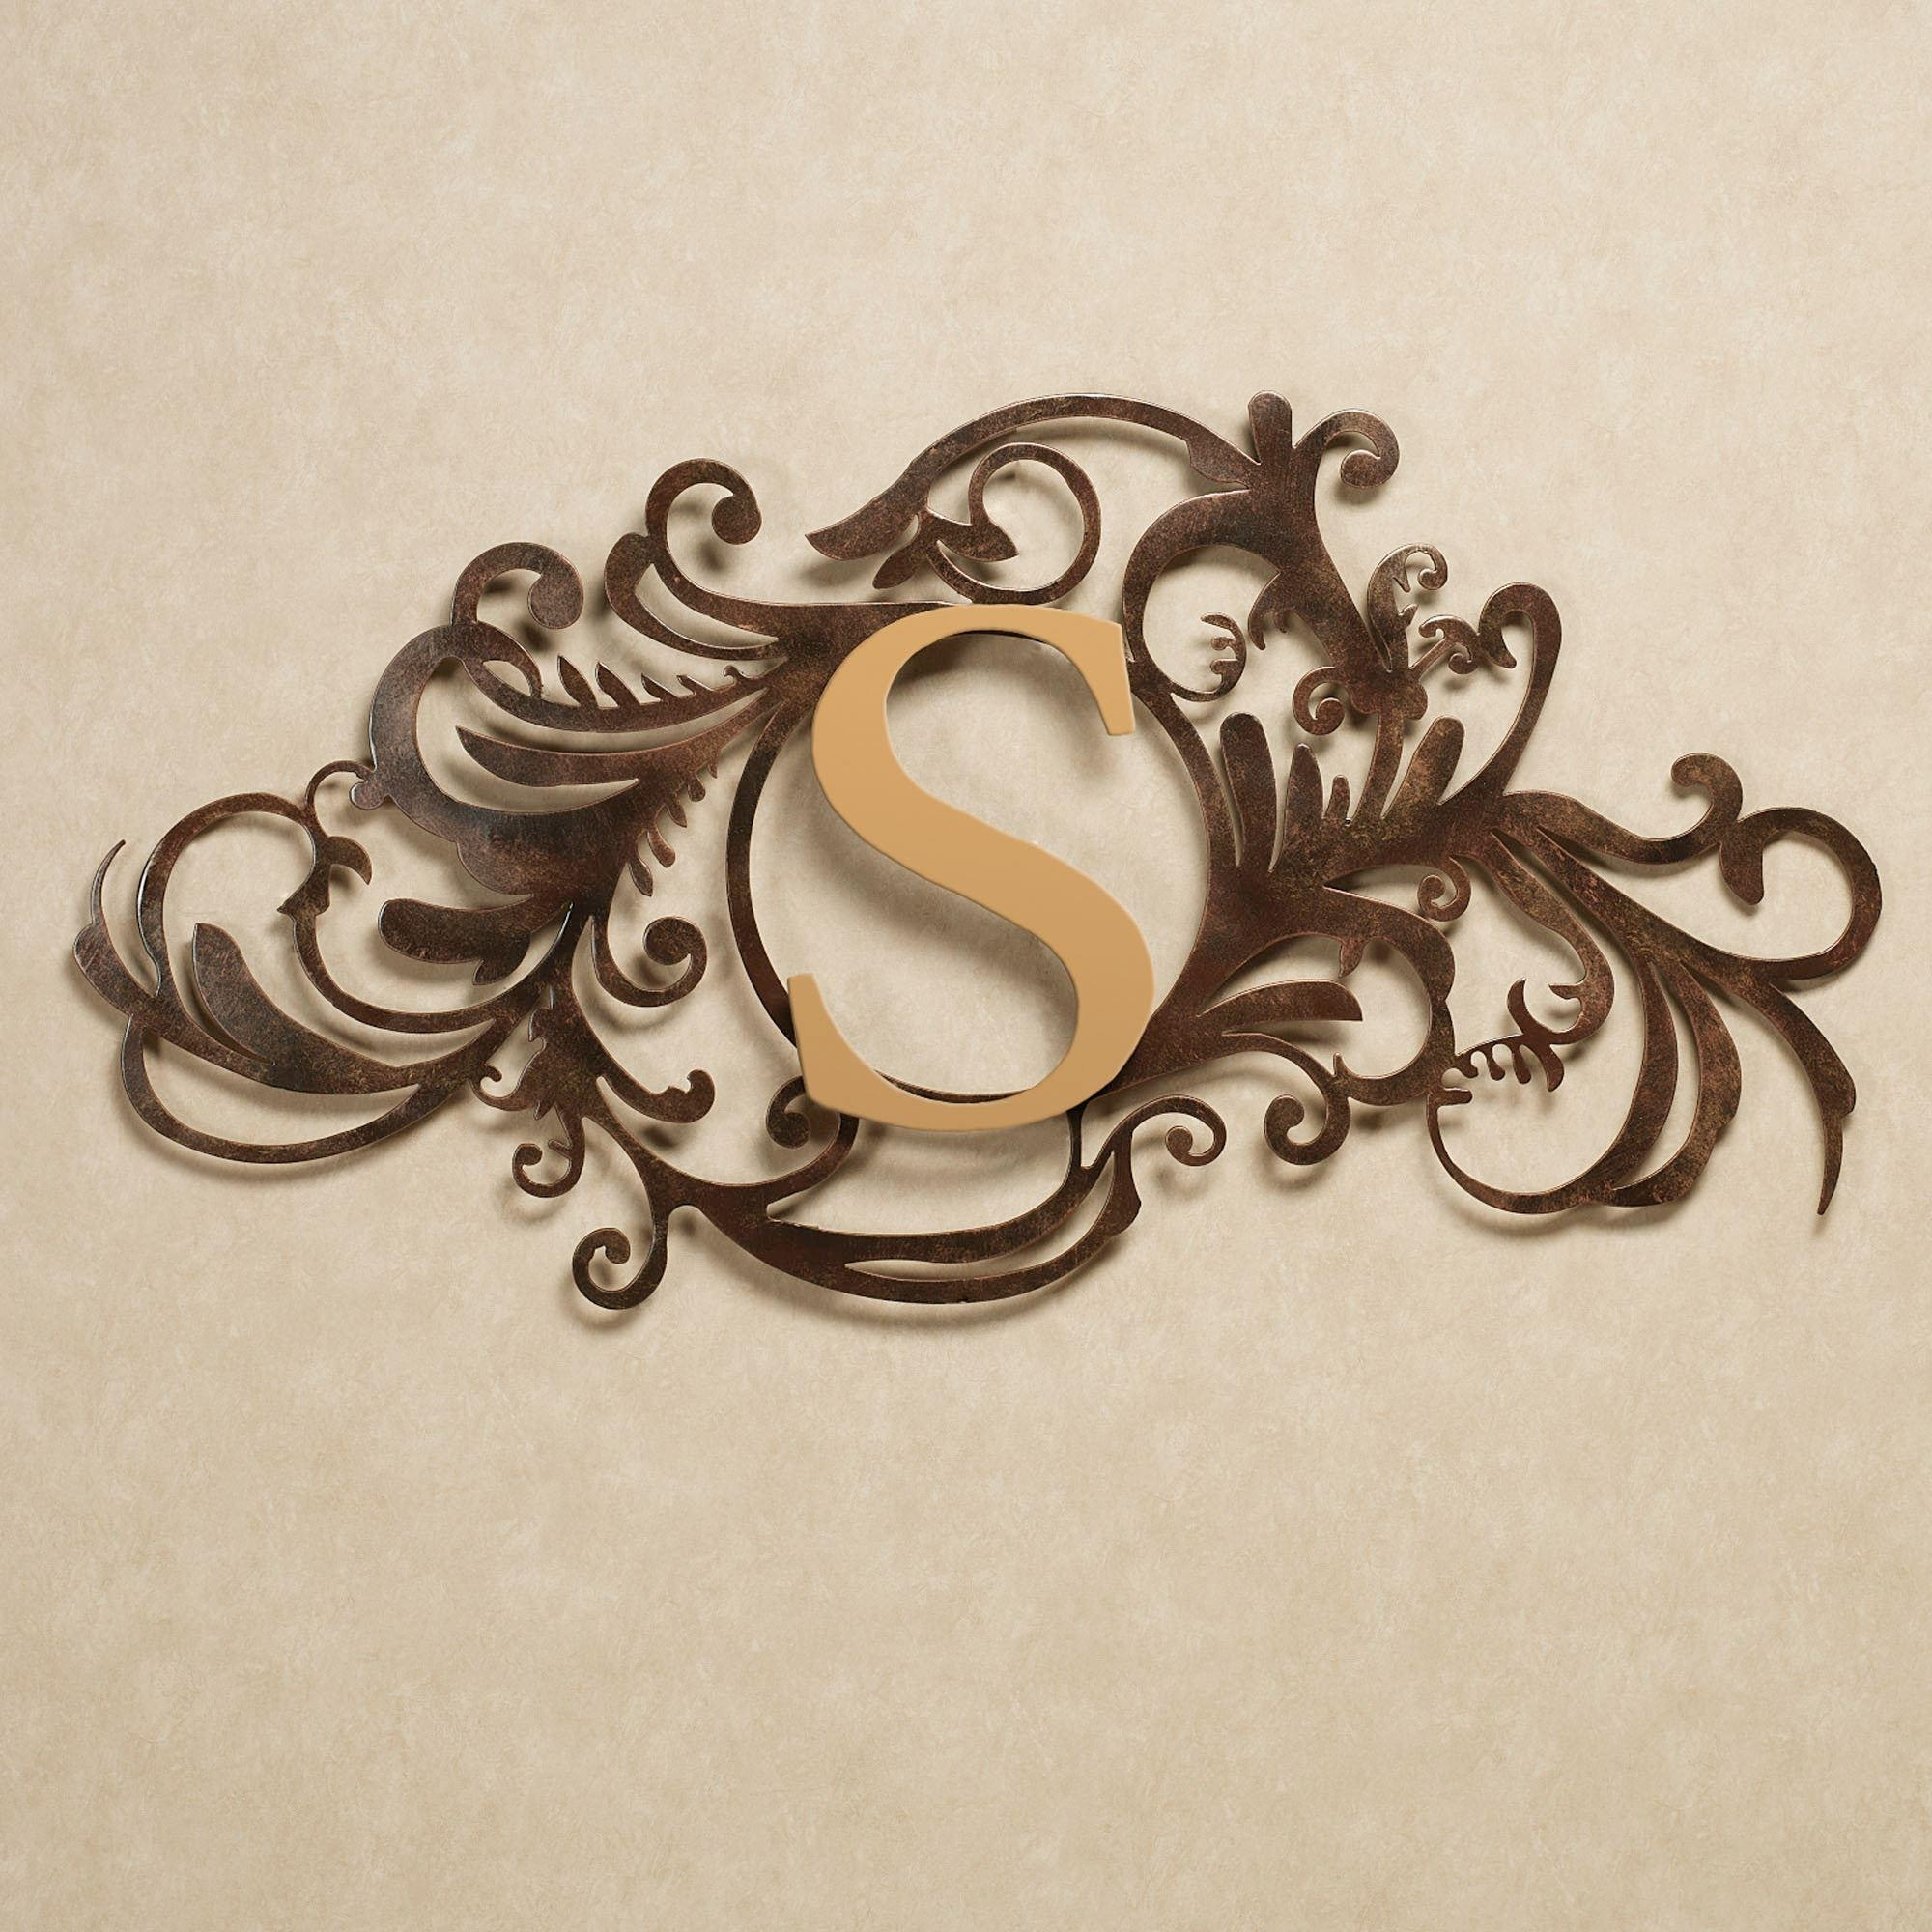 Evanston Indoor Outdoor Monogram Metal Wall Art Sign Intended For Monogram Metal Wall Art (Image 4 of 20)